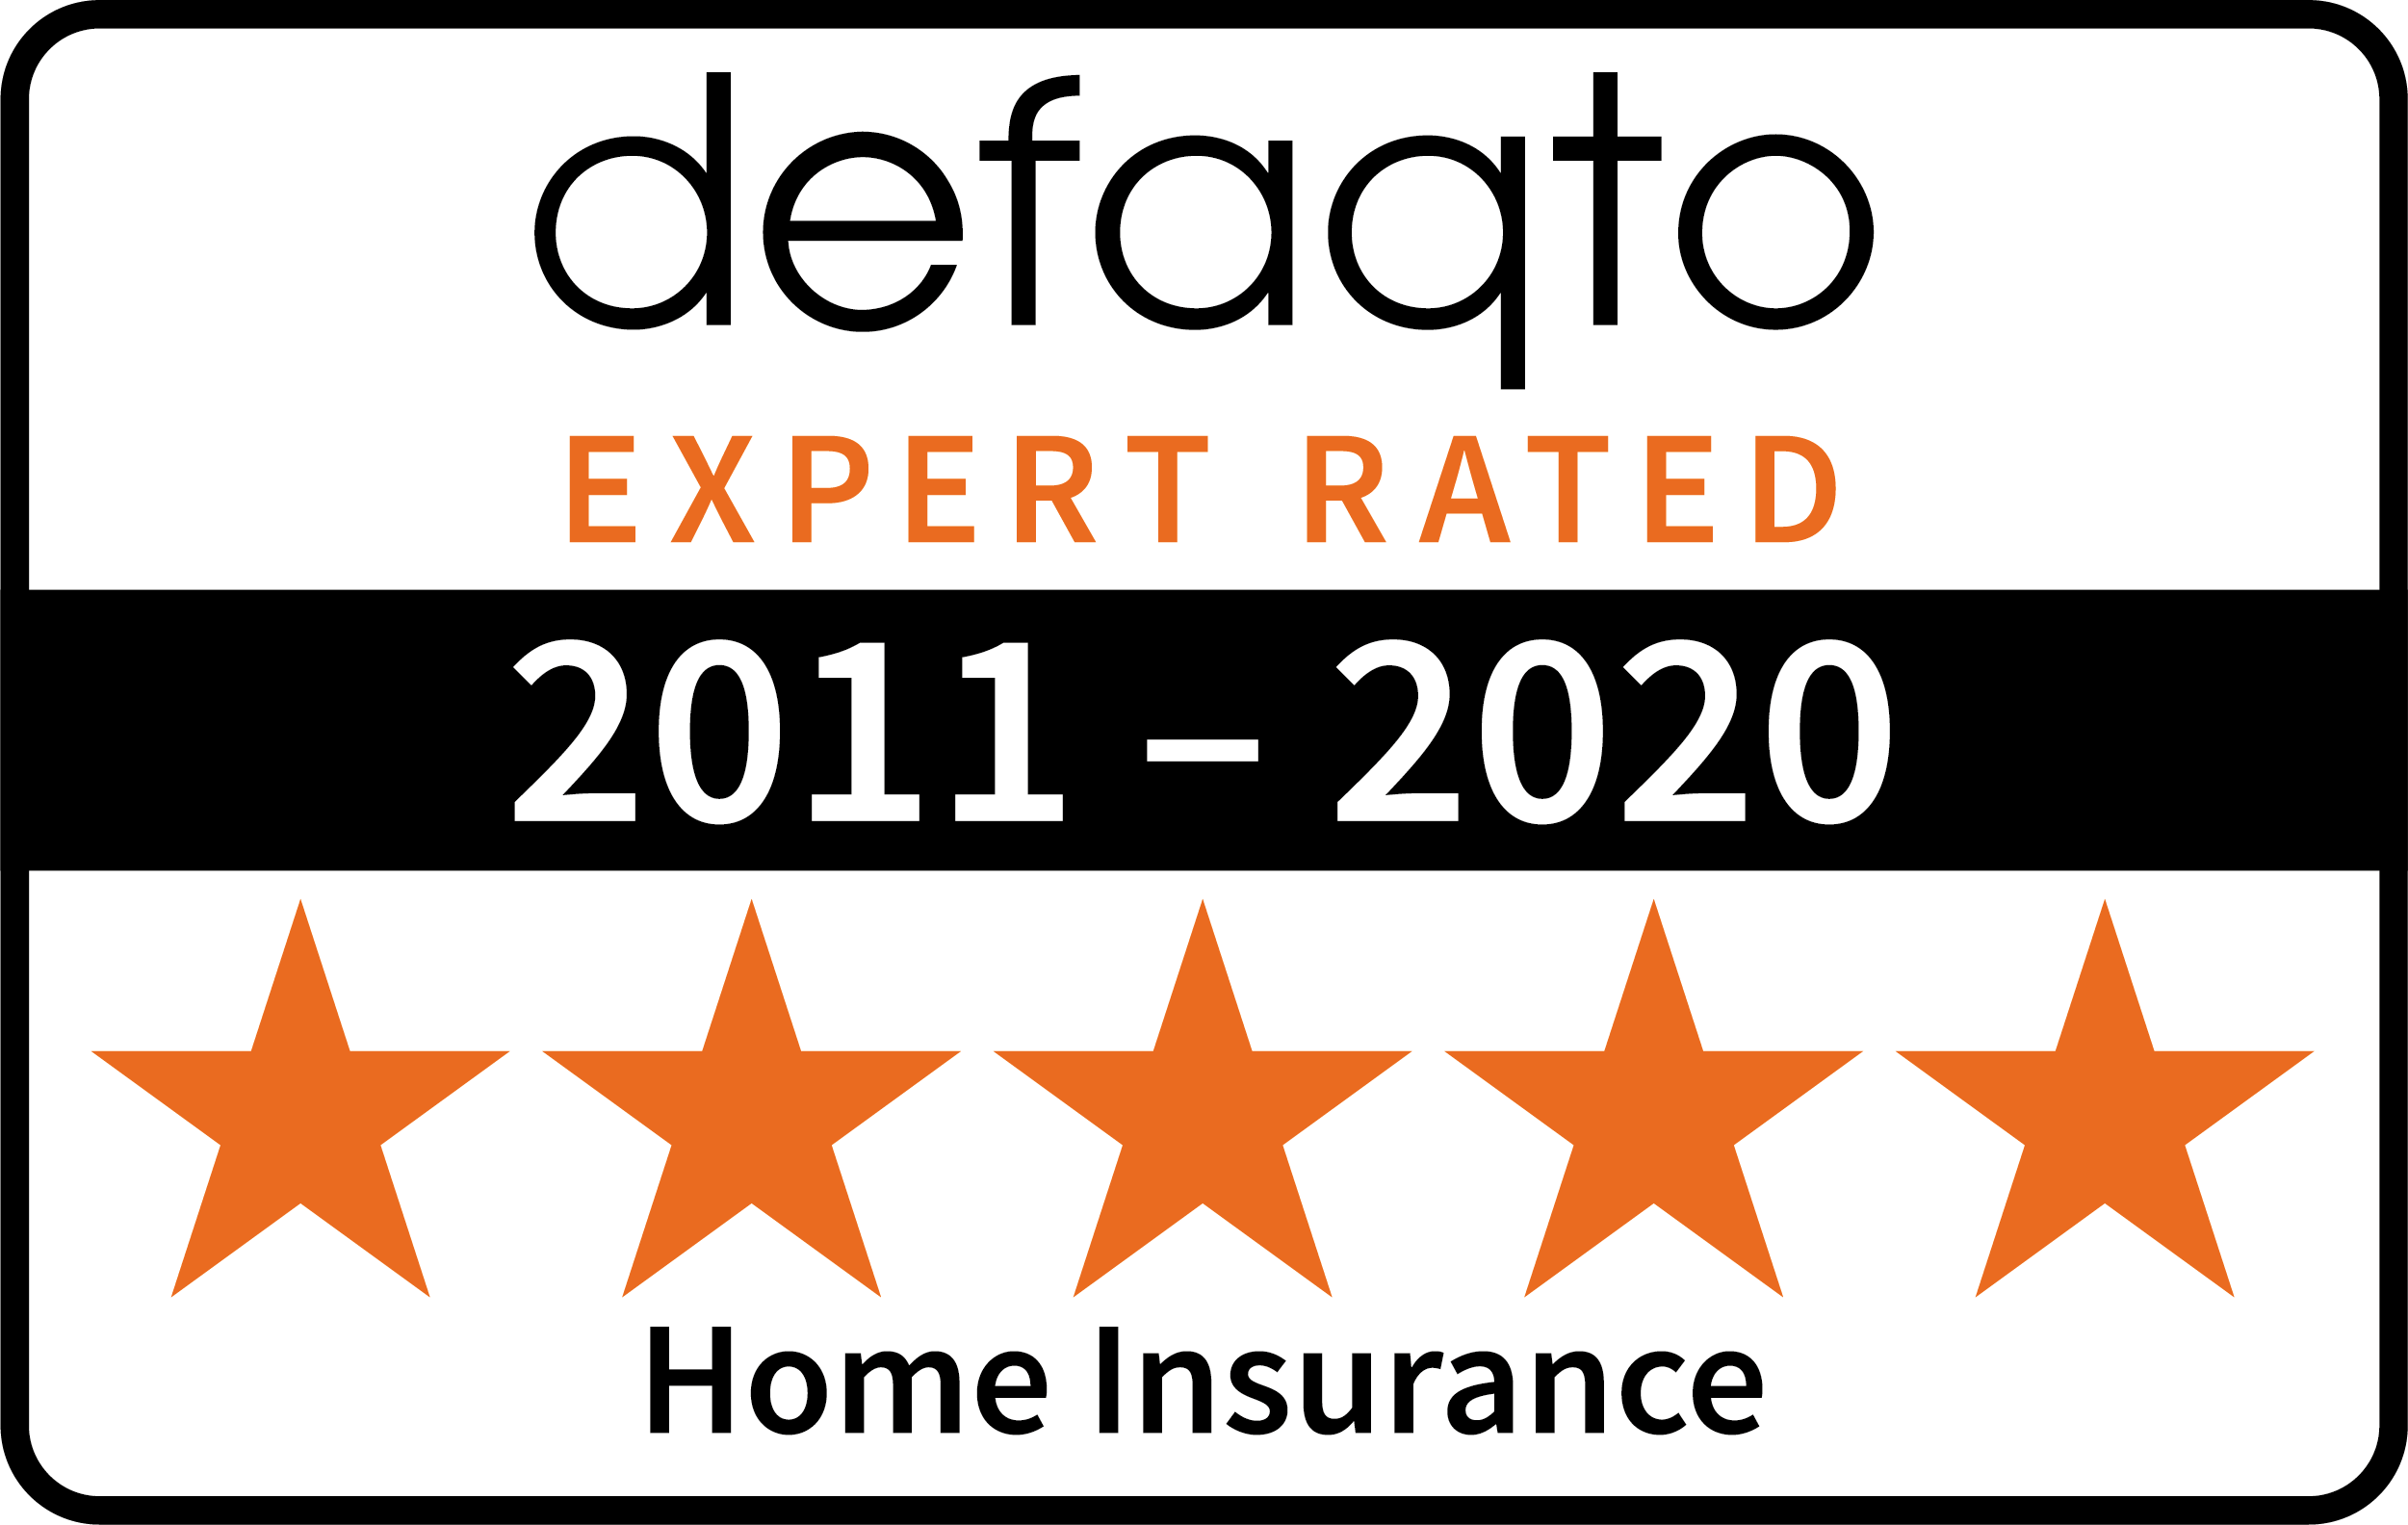 defaqto home insurance 2011-2020